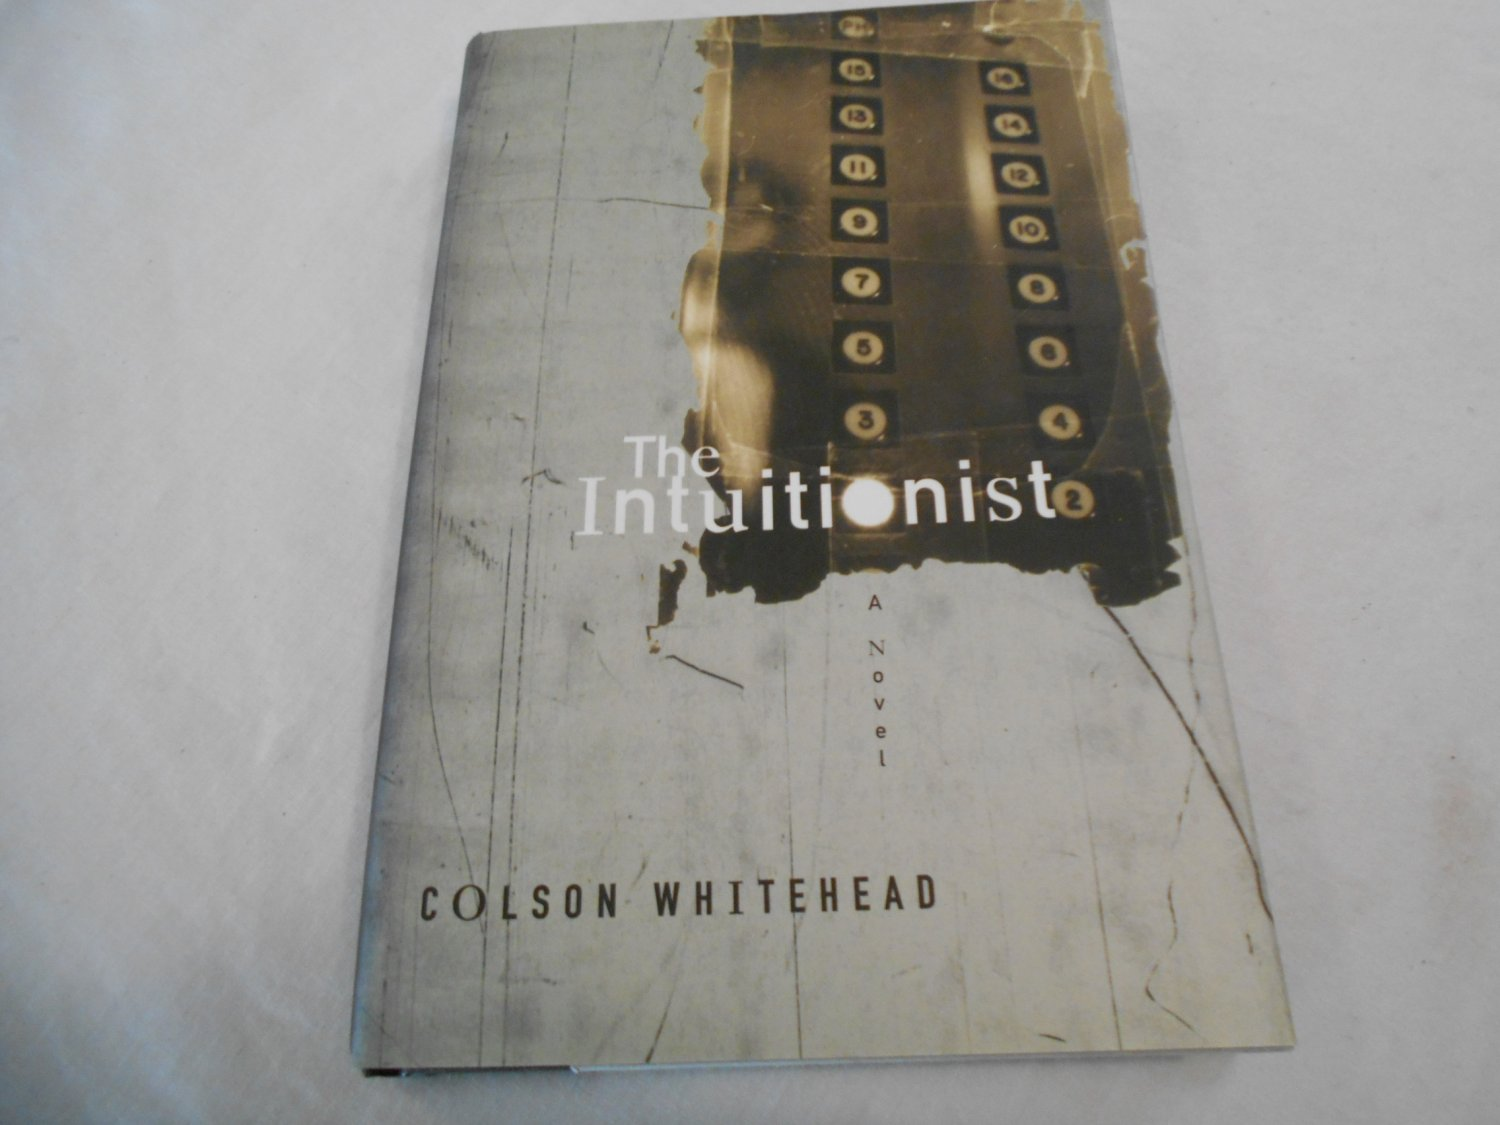 The Intuitionist by Colson Whitehead (1999) (GR4) Science Fiction, Mystery